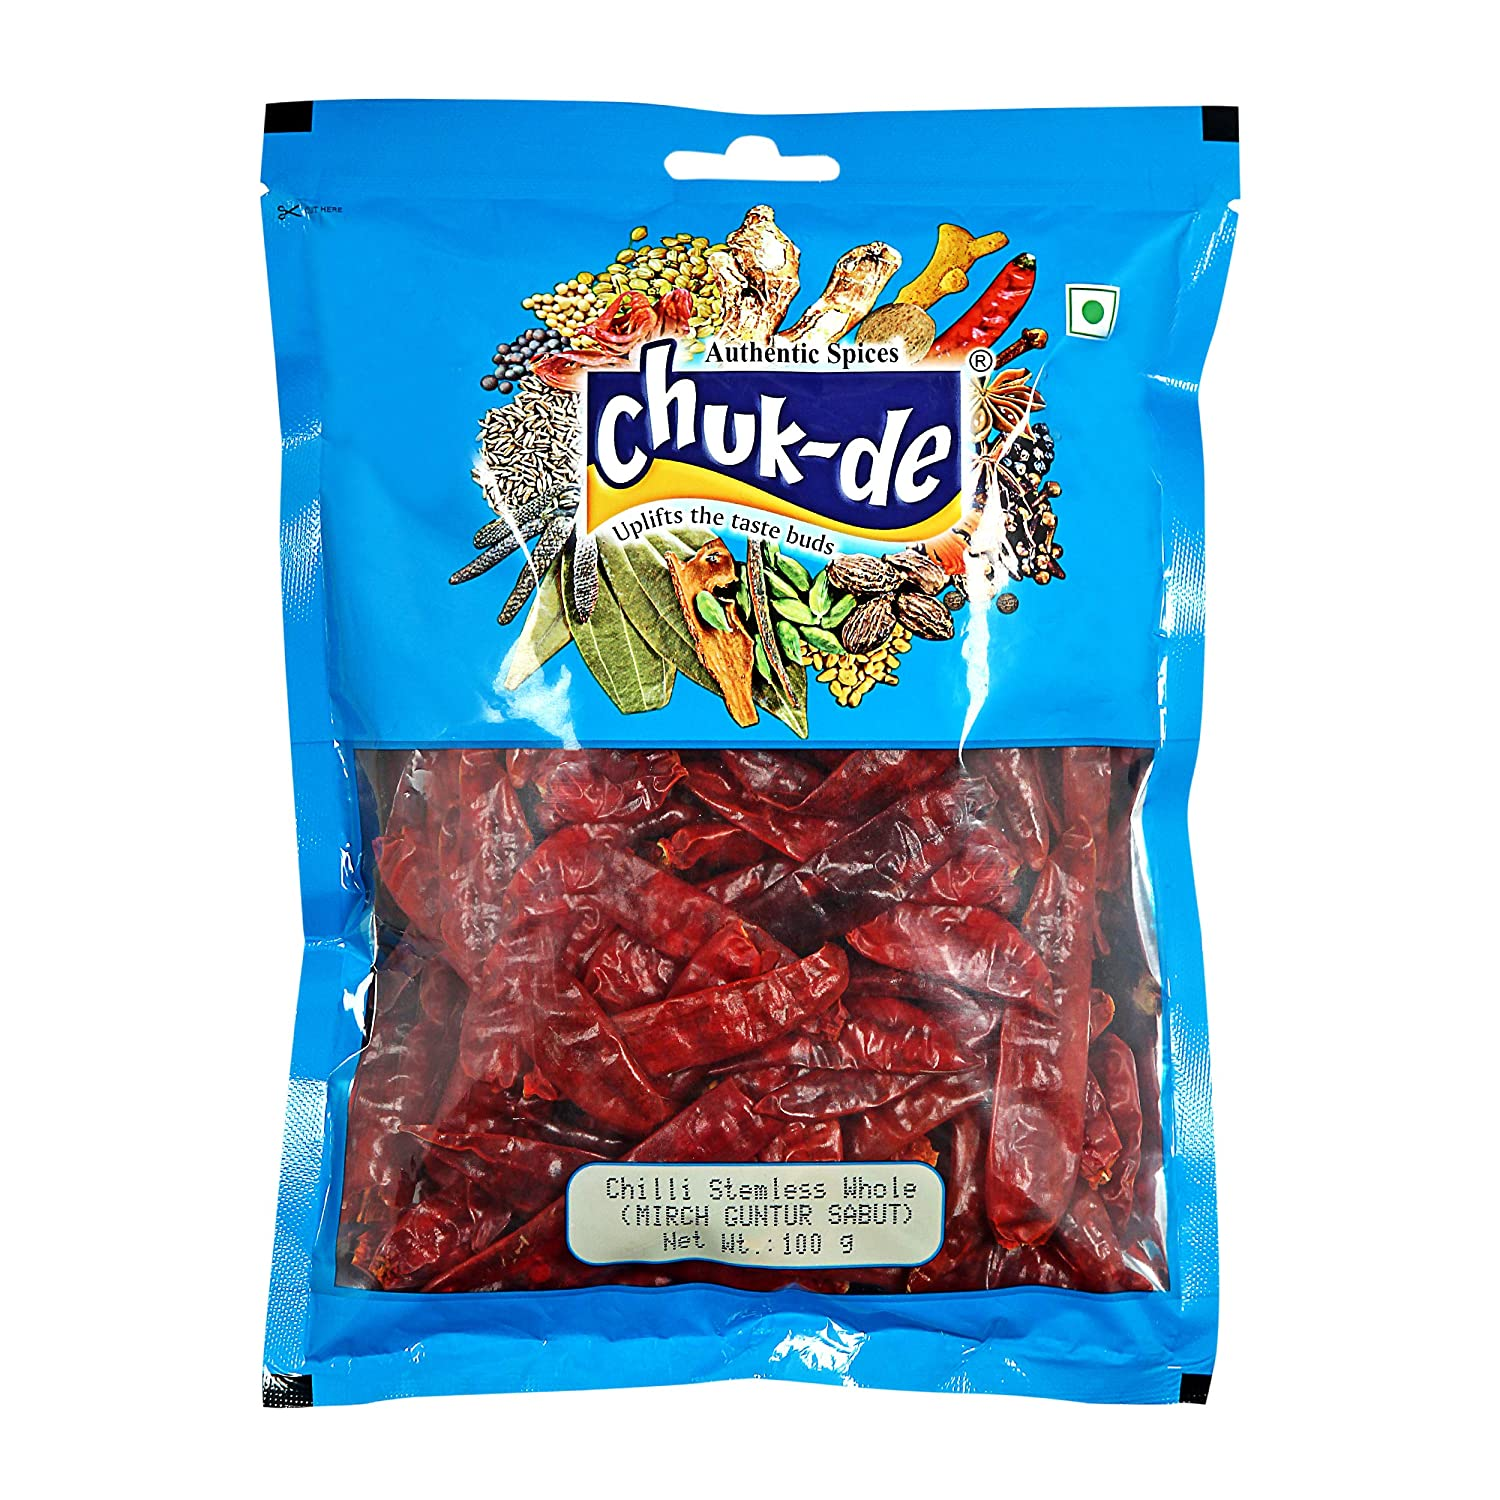 Chuk-de Red Chilli Whole 100g